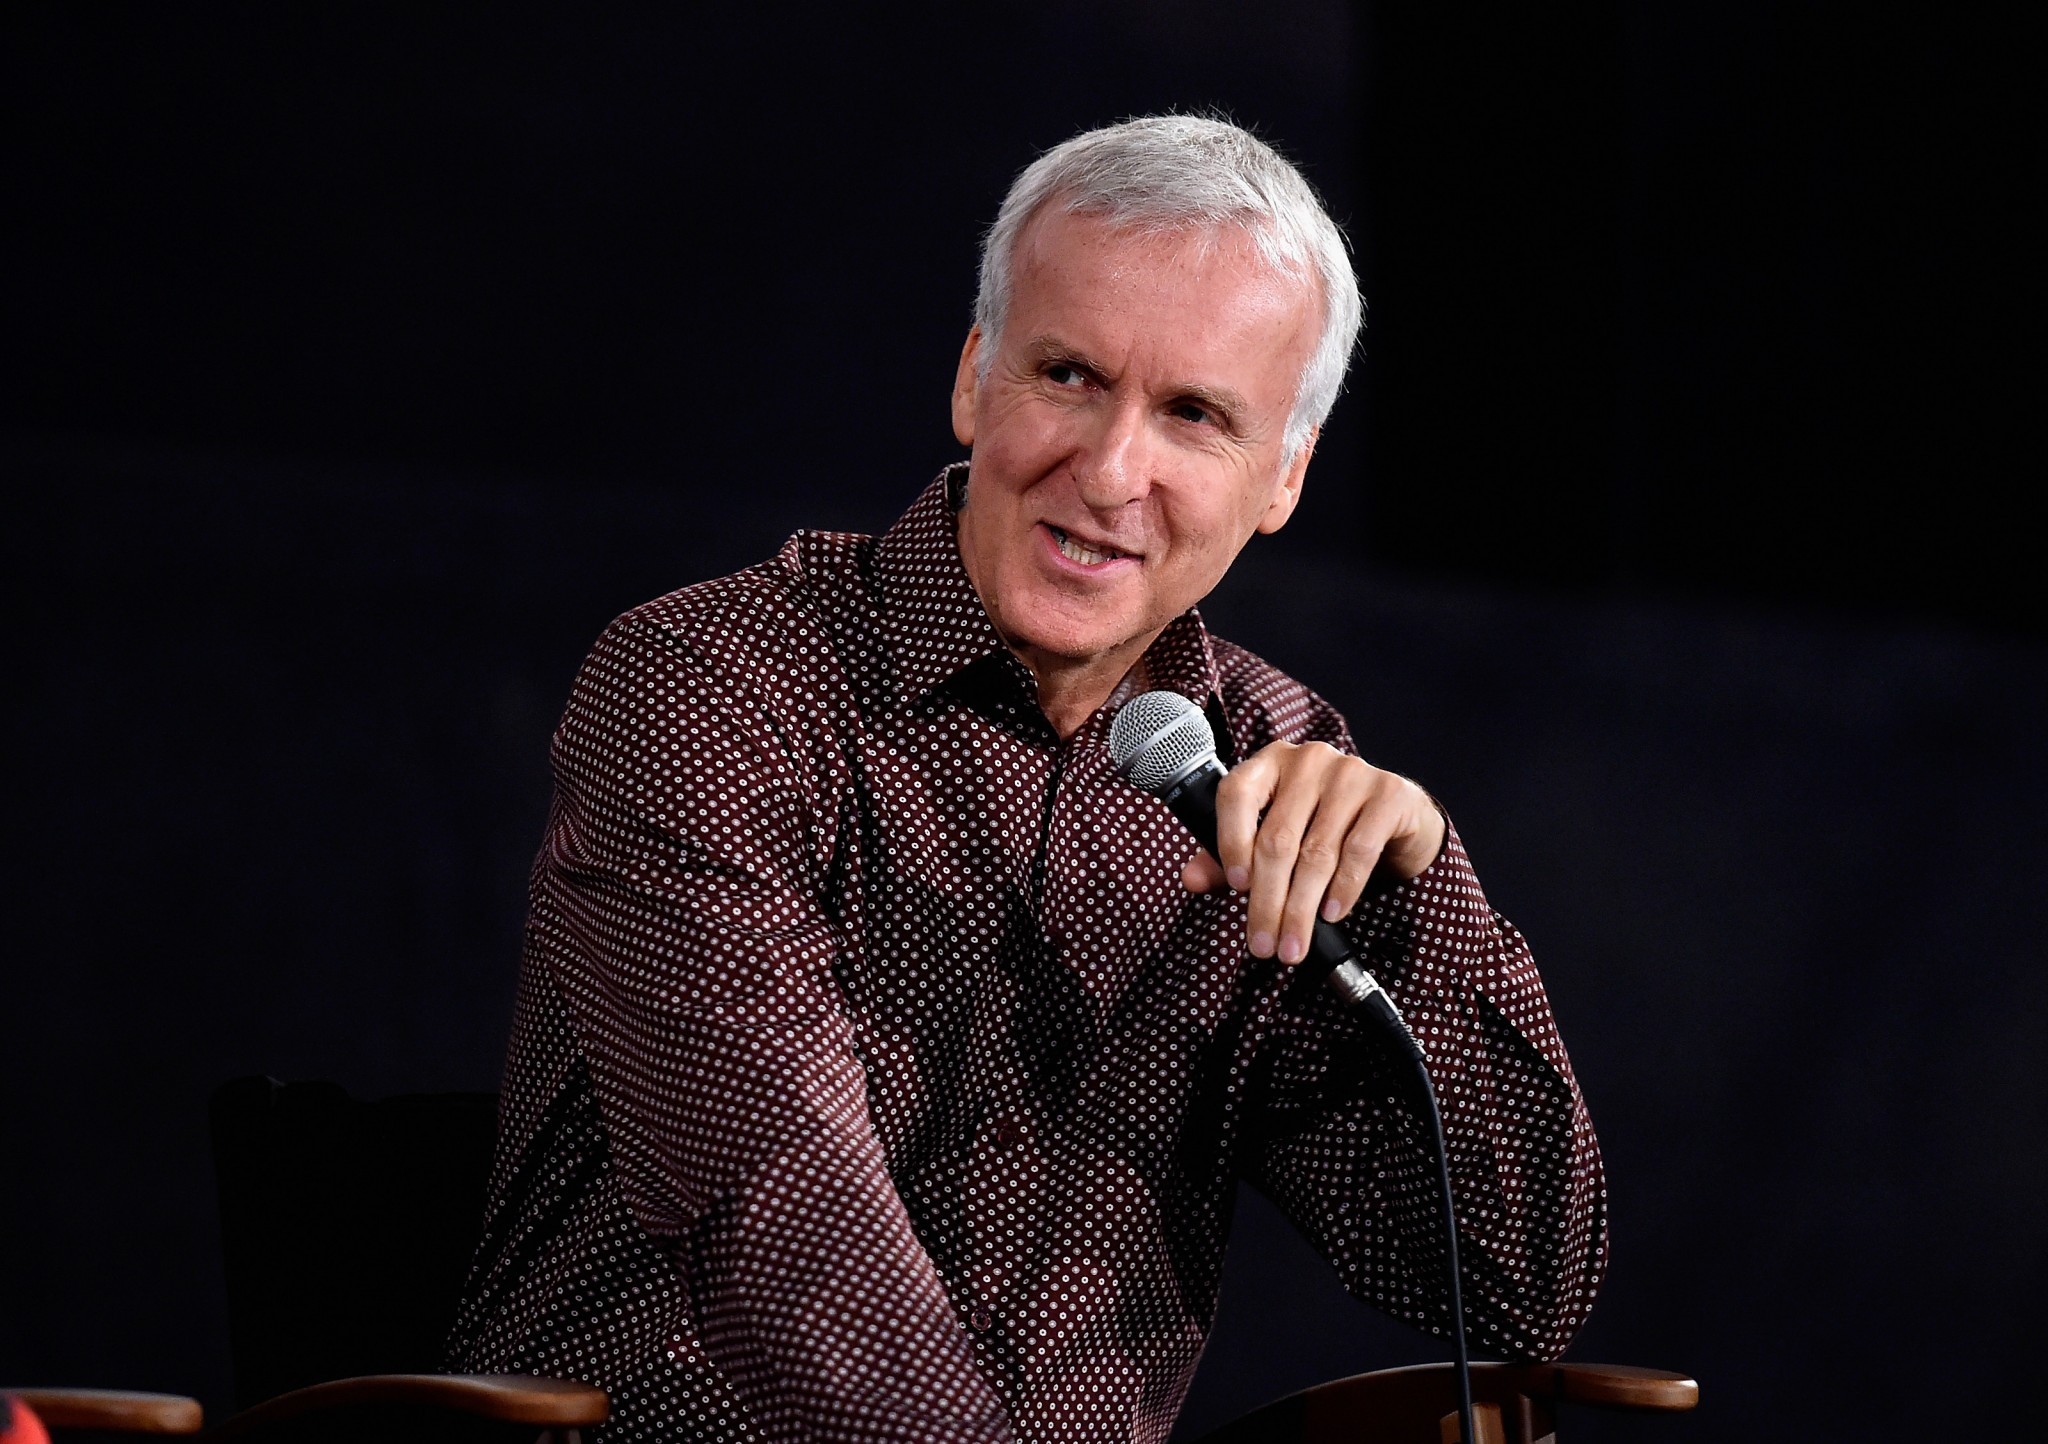 Avatar director James Cameron at a screening for Terminator